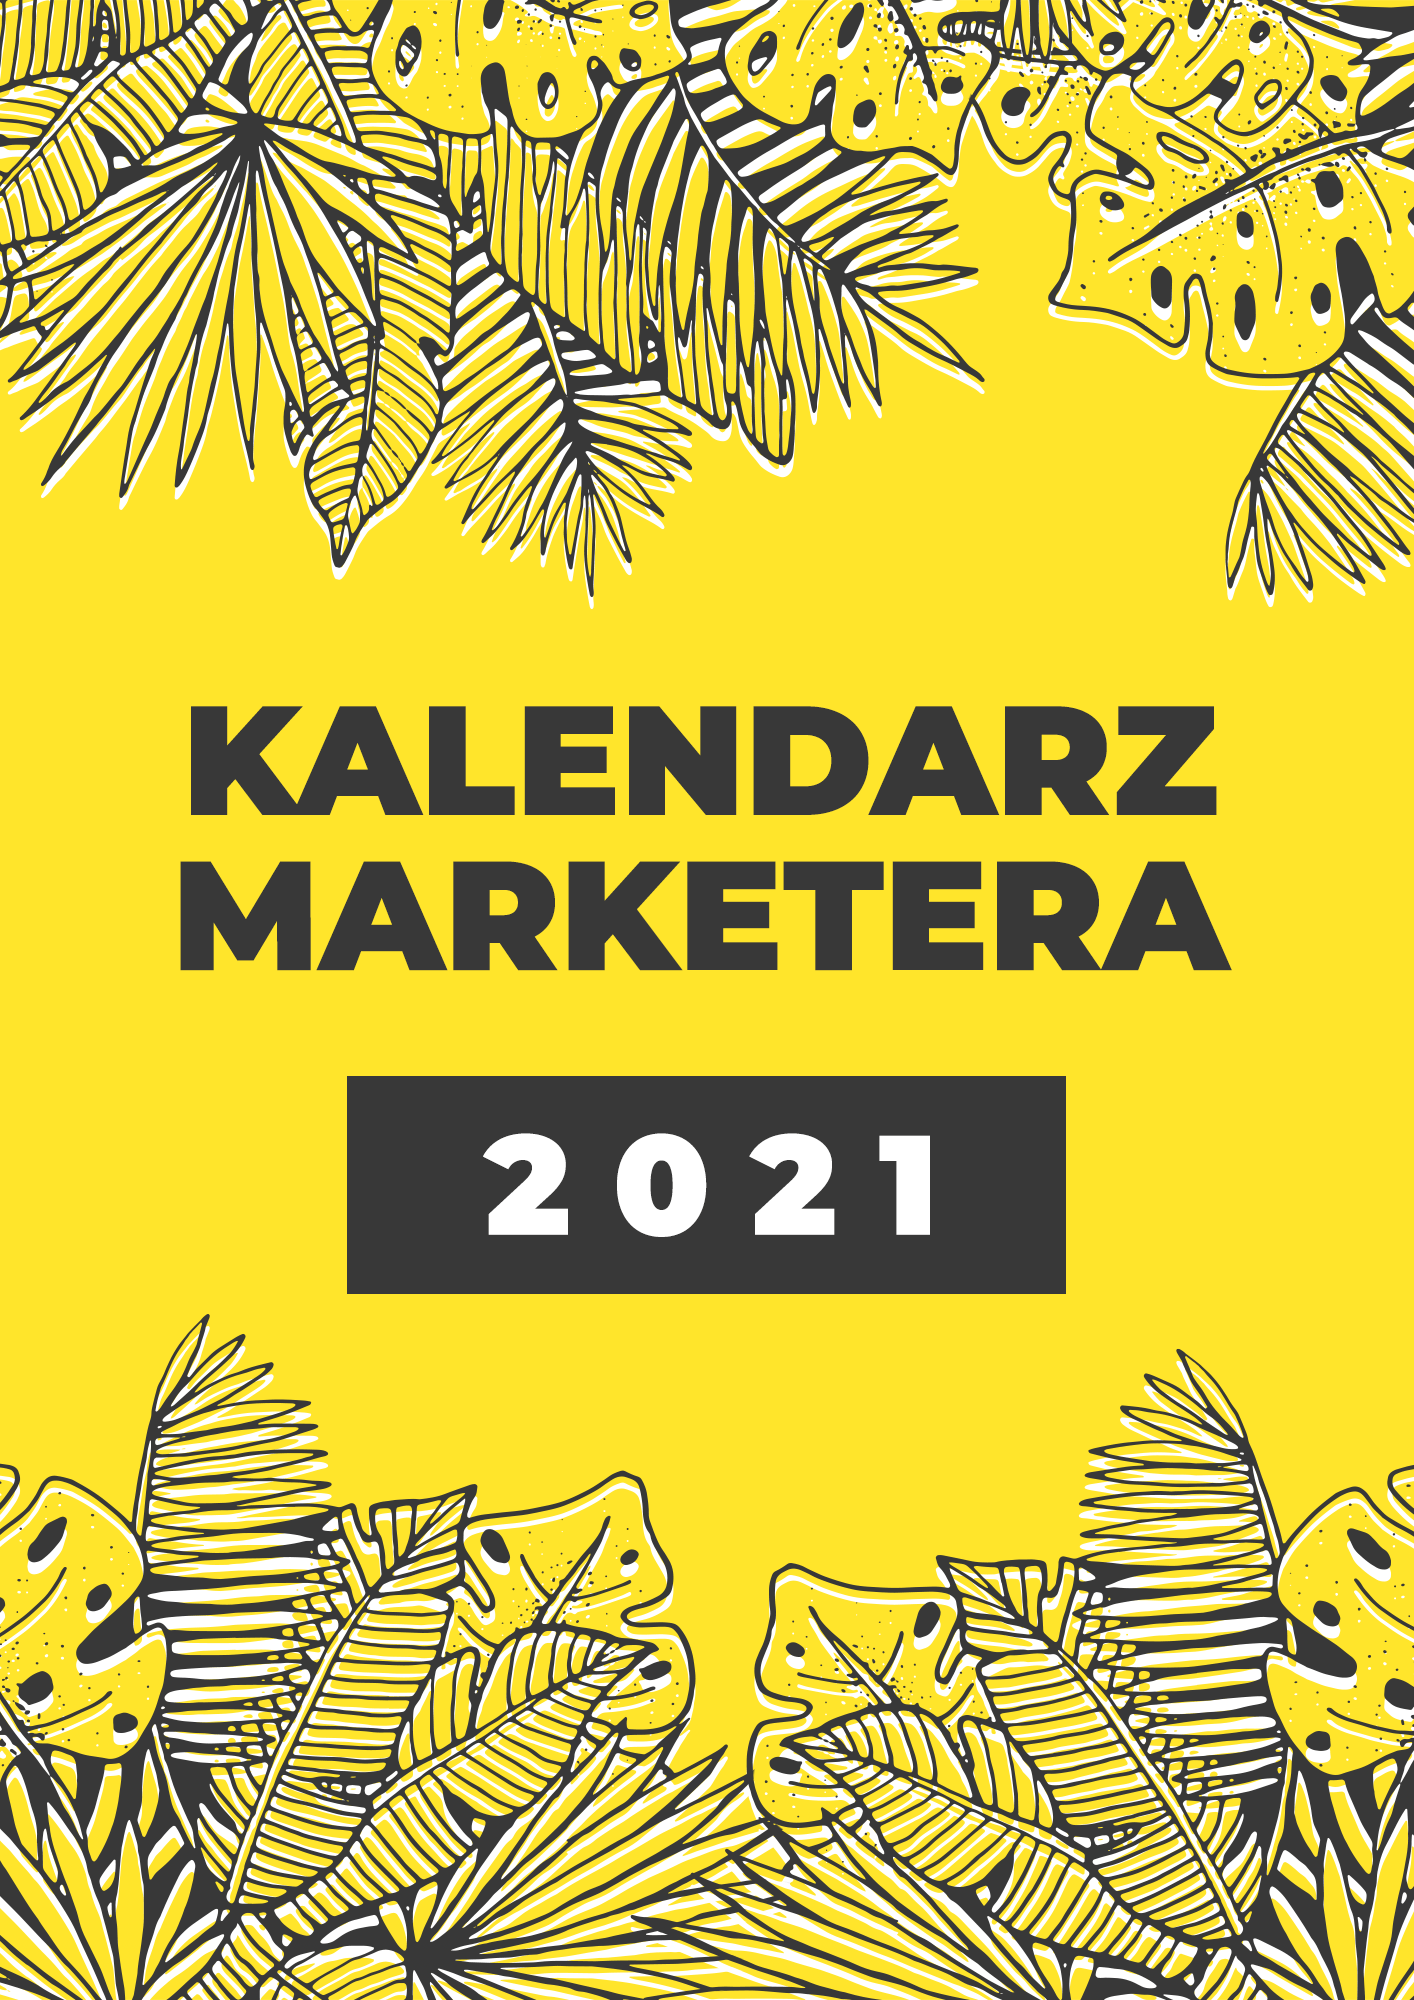 kalendarz marketera